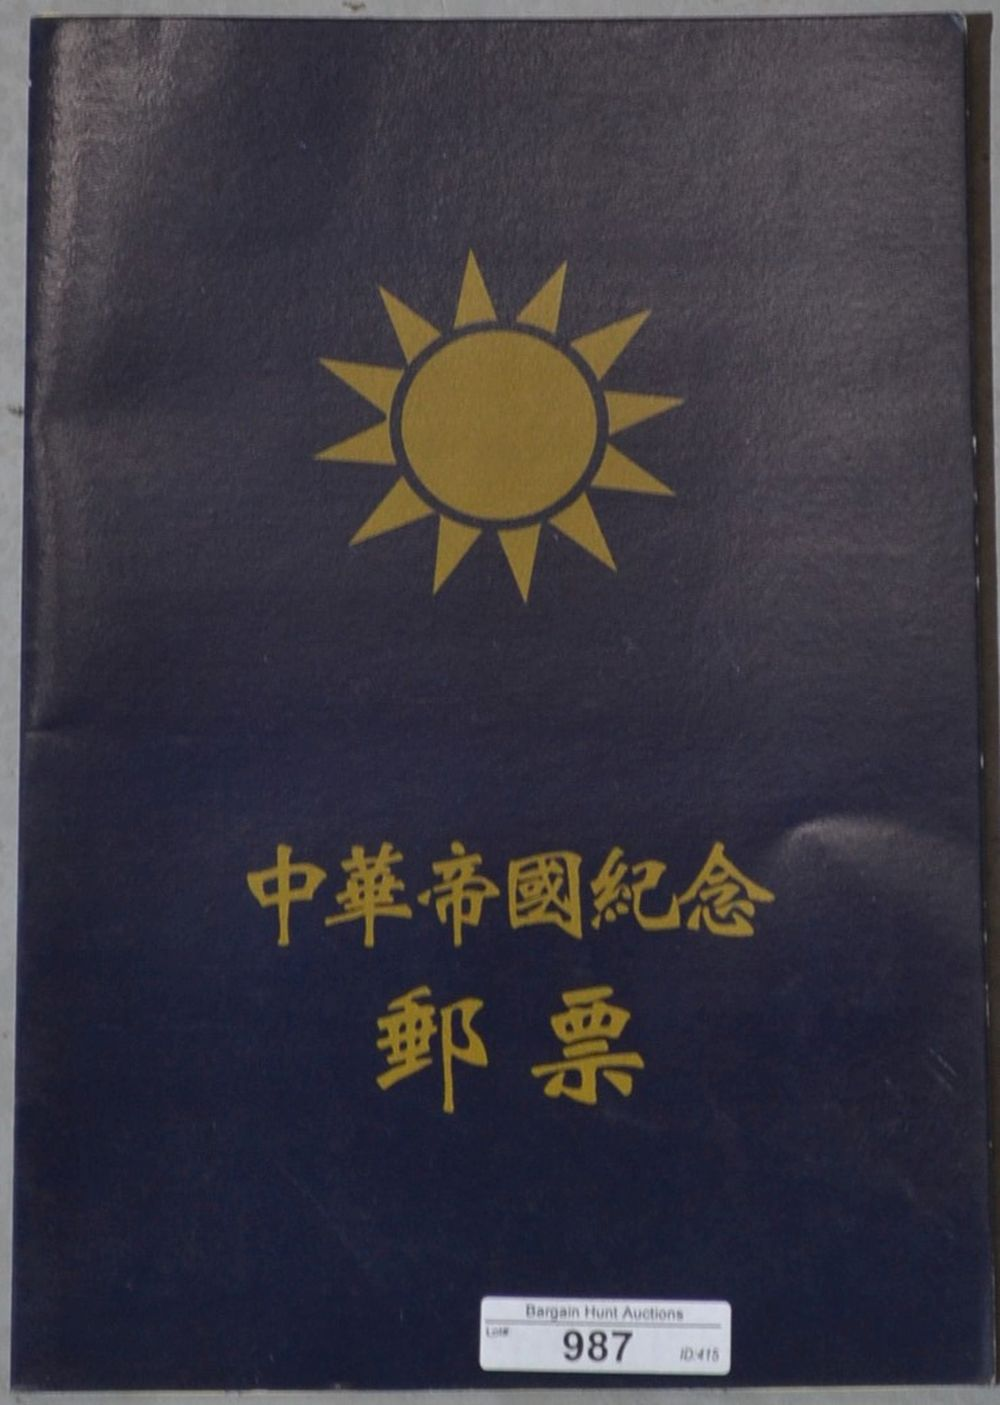 Album containing Chinese facsimile stamps